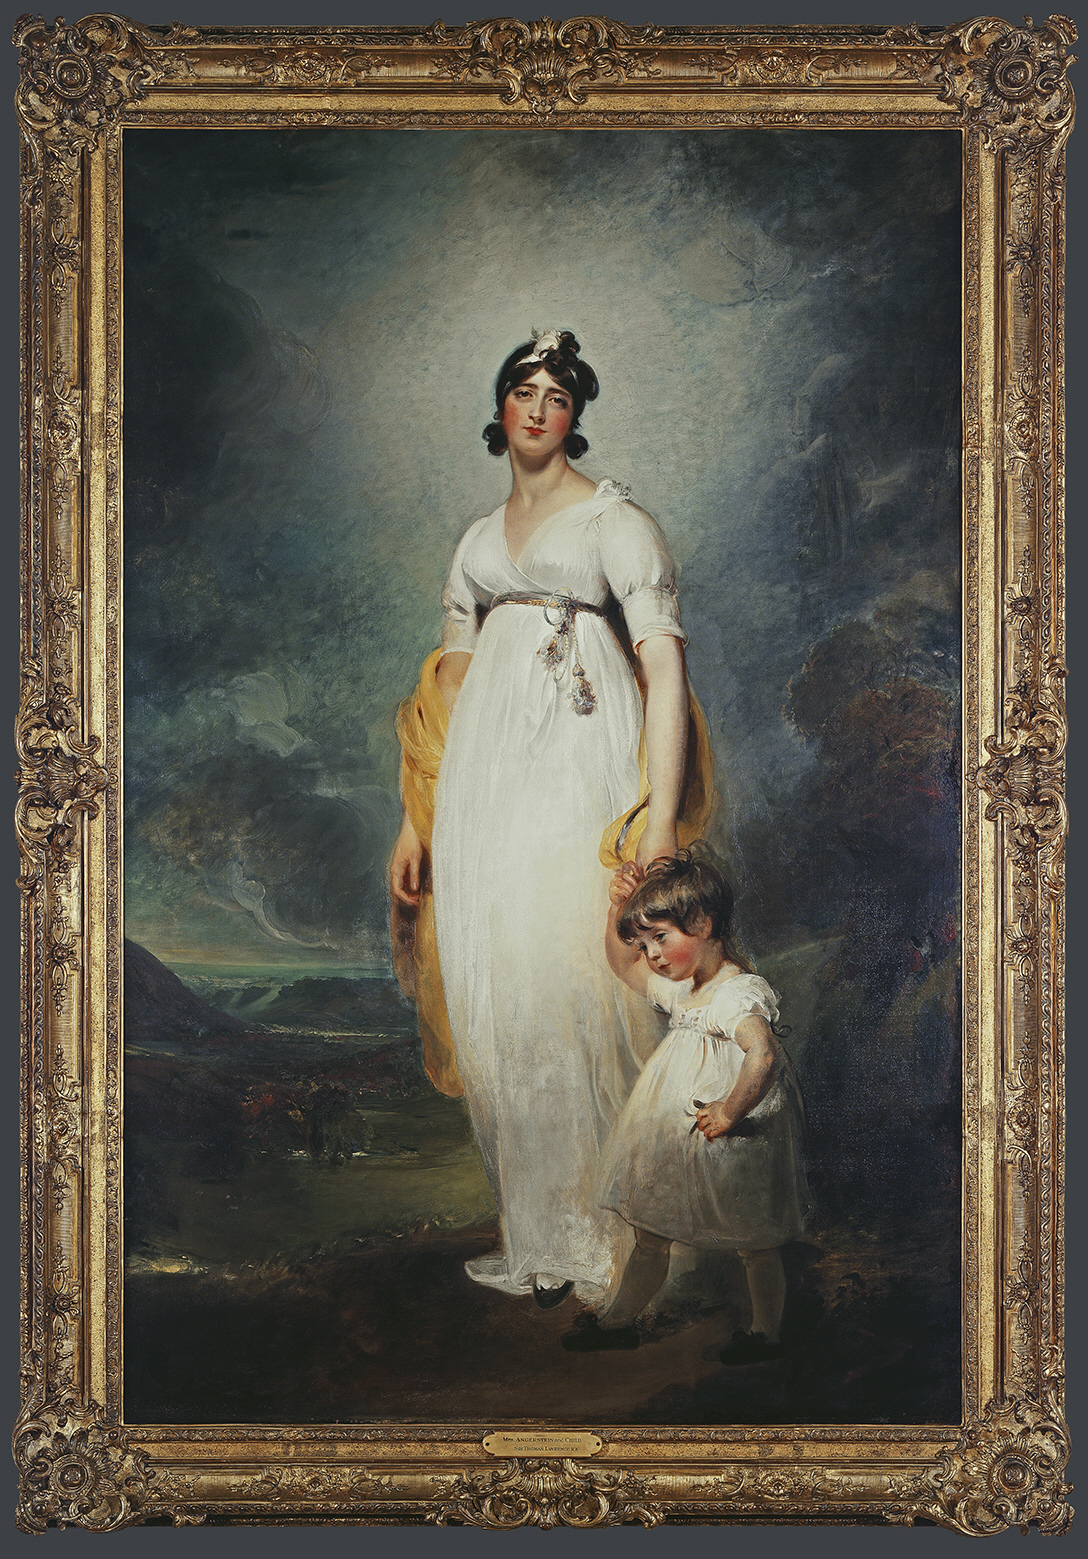 Sir Thomas Lawrence. Portrait d'Amélia Angerstein, née Lock, et de son fils aîné John Julius William, 1799, © MAH, photo: J.-M. Yersin, inv. 1985-56